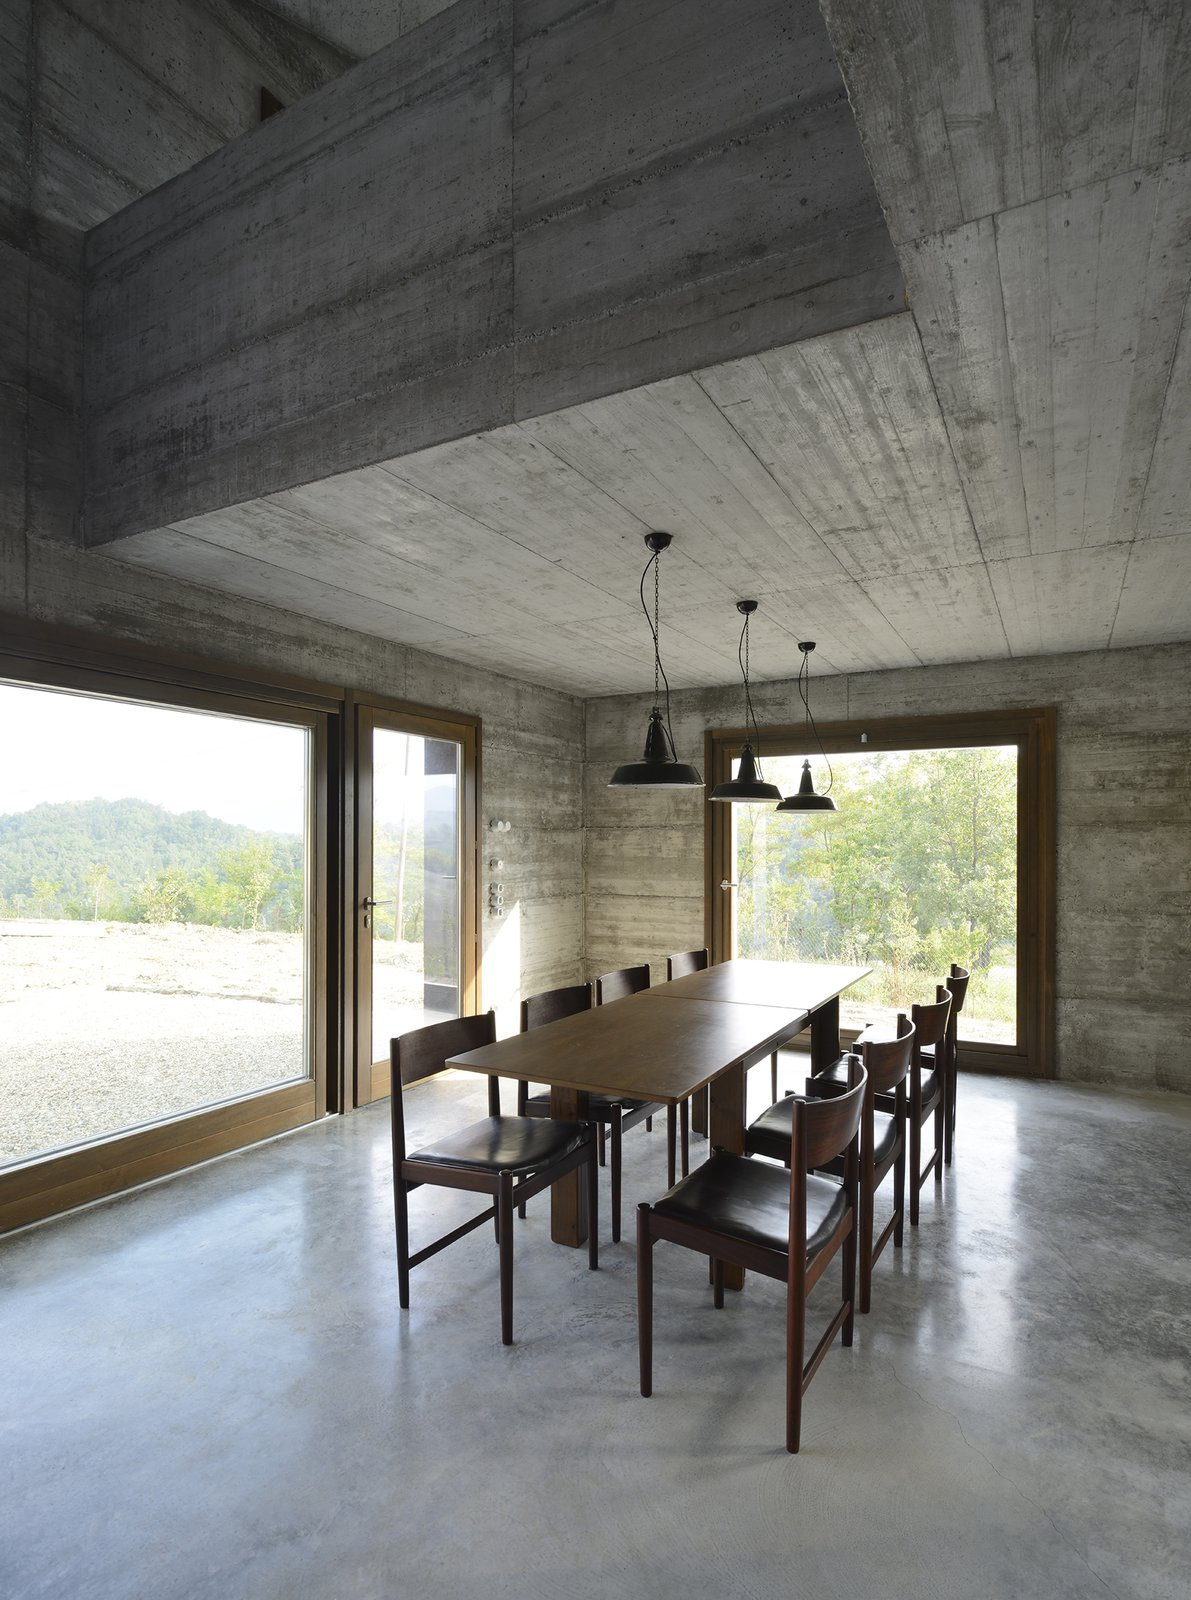 Dining Room, Table, Ceiling Lighting, Chair, Concrete Floor, and Pendant Lighting  HOUSE R